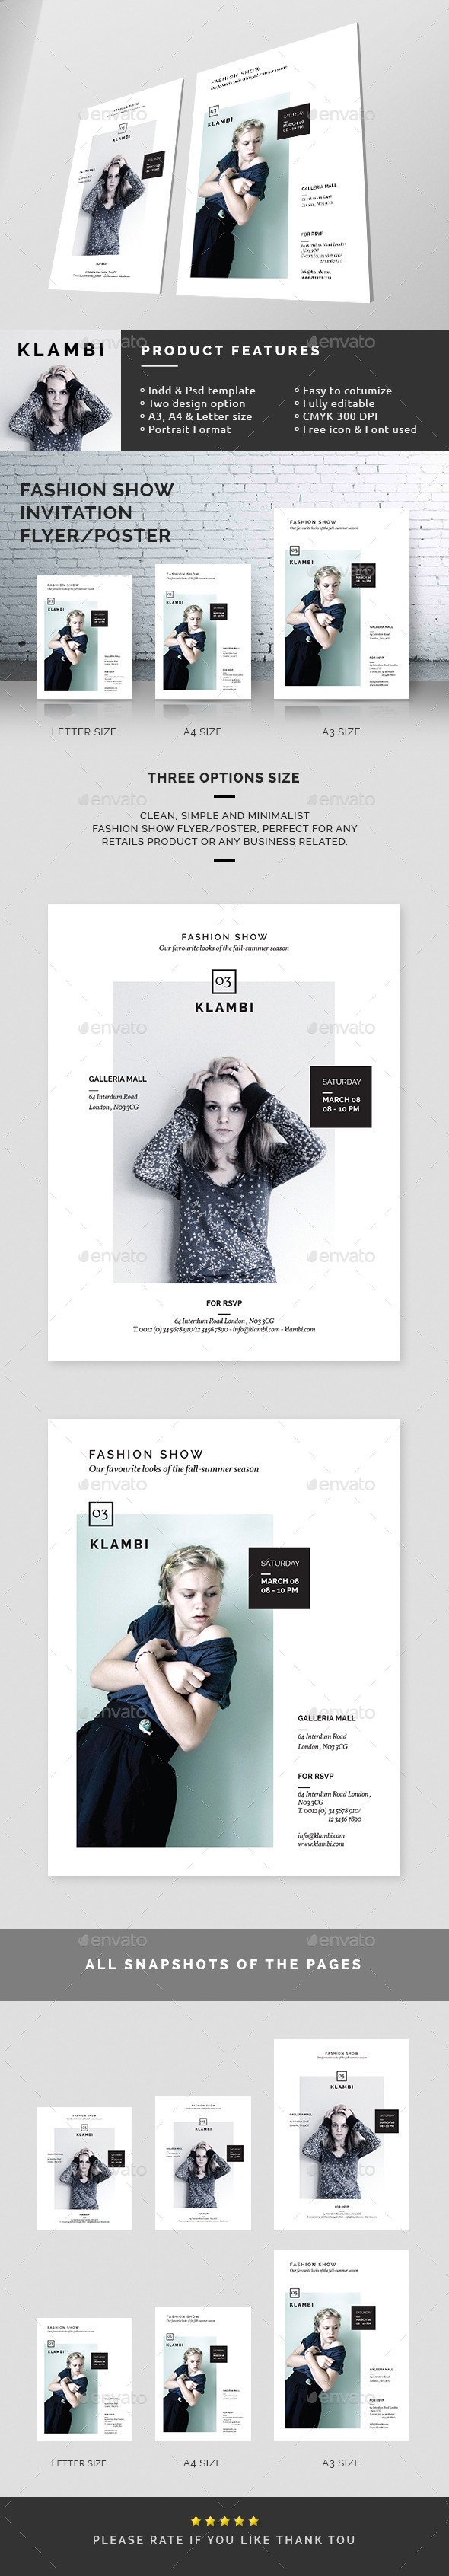 GraphicRiver Fashion Show Invitation Flyer Poster 10540871